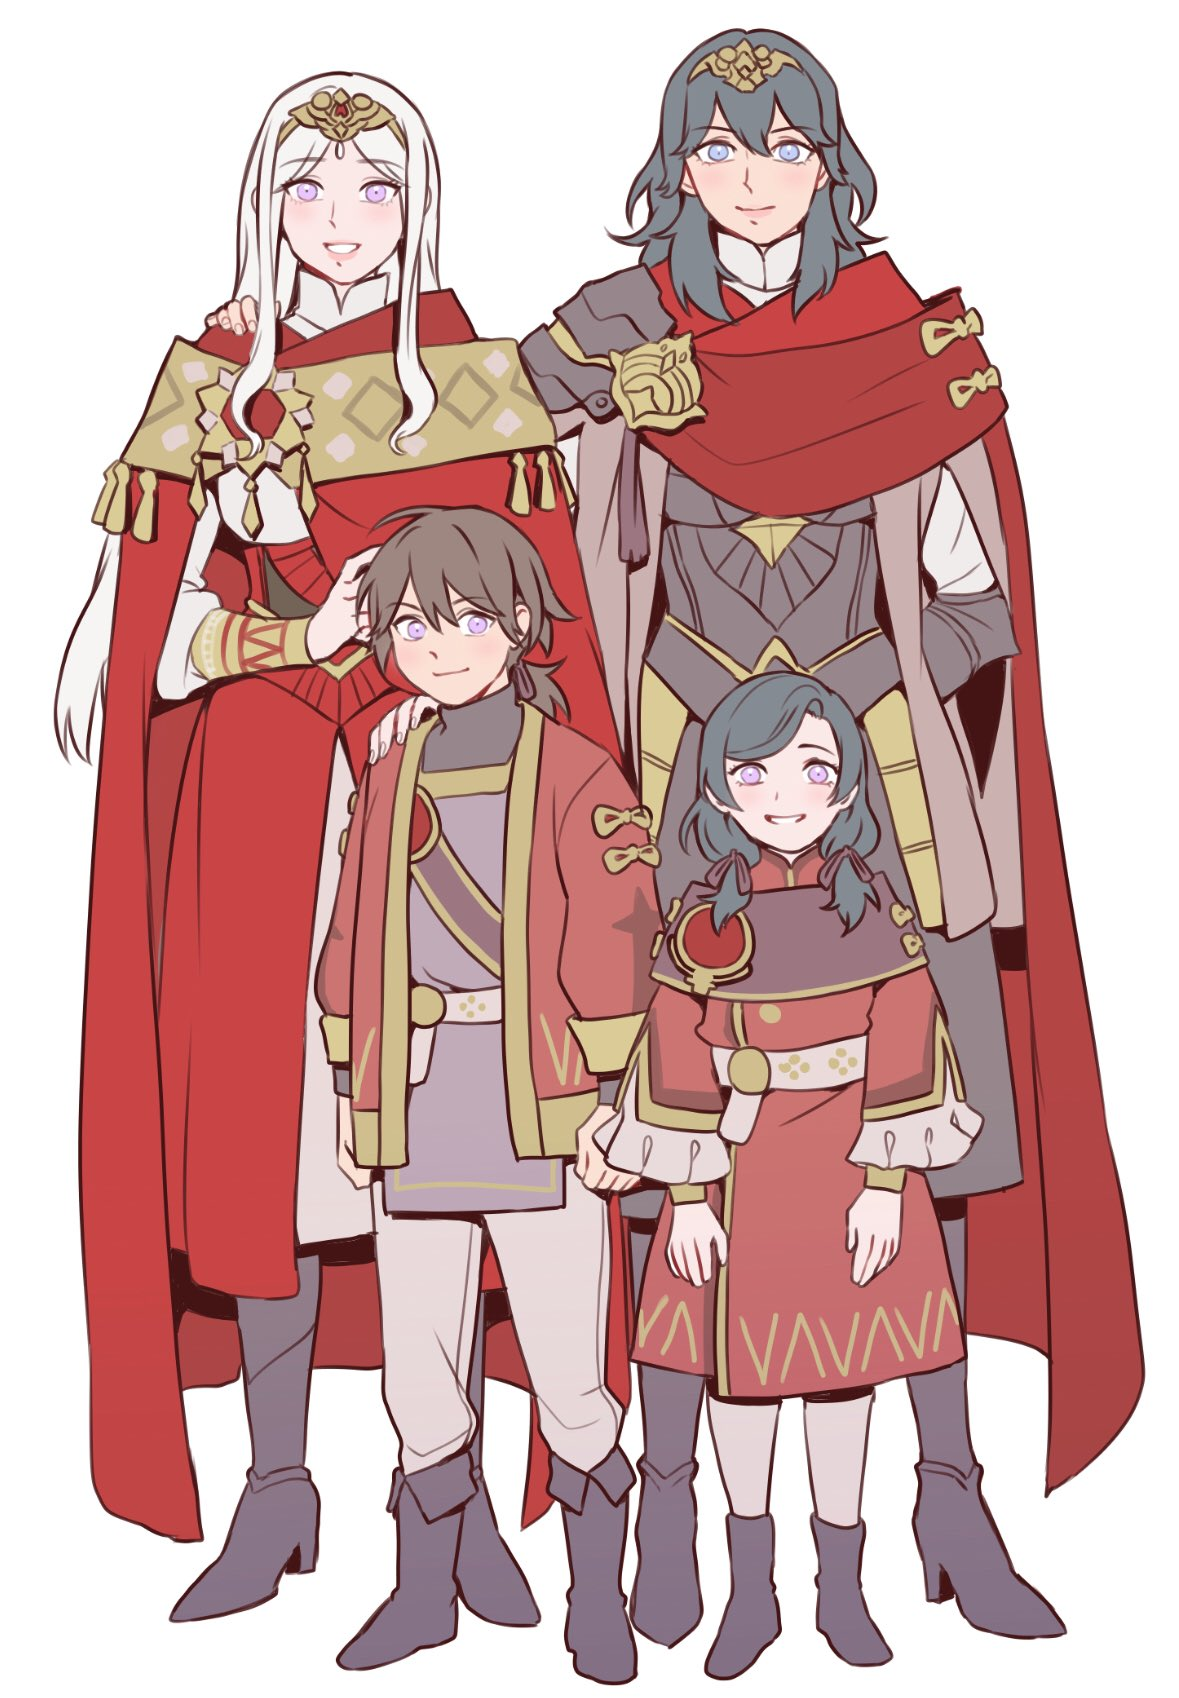 1boy 3girls arm_around_shoulder arm_behind_back blue_eyes boots byleth_(fire_emblem) byleth_(fire_emblem)_(female) cape edelgard_von_hresvelg eyebrows_visible_through_hair family fire_emblem fire_emblem:_three_houses formal green_hair highres ips_cells mother_and_daughter mother_and_son multiple_girls radiostarkiller red_cape silver_hair simple_background smile standing tiara violet_eyes white_background wife_and_wife yuri